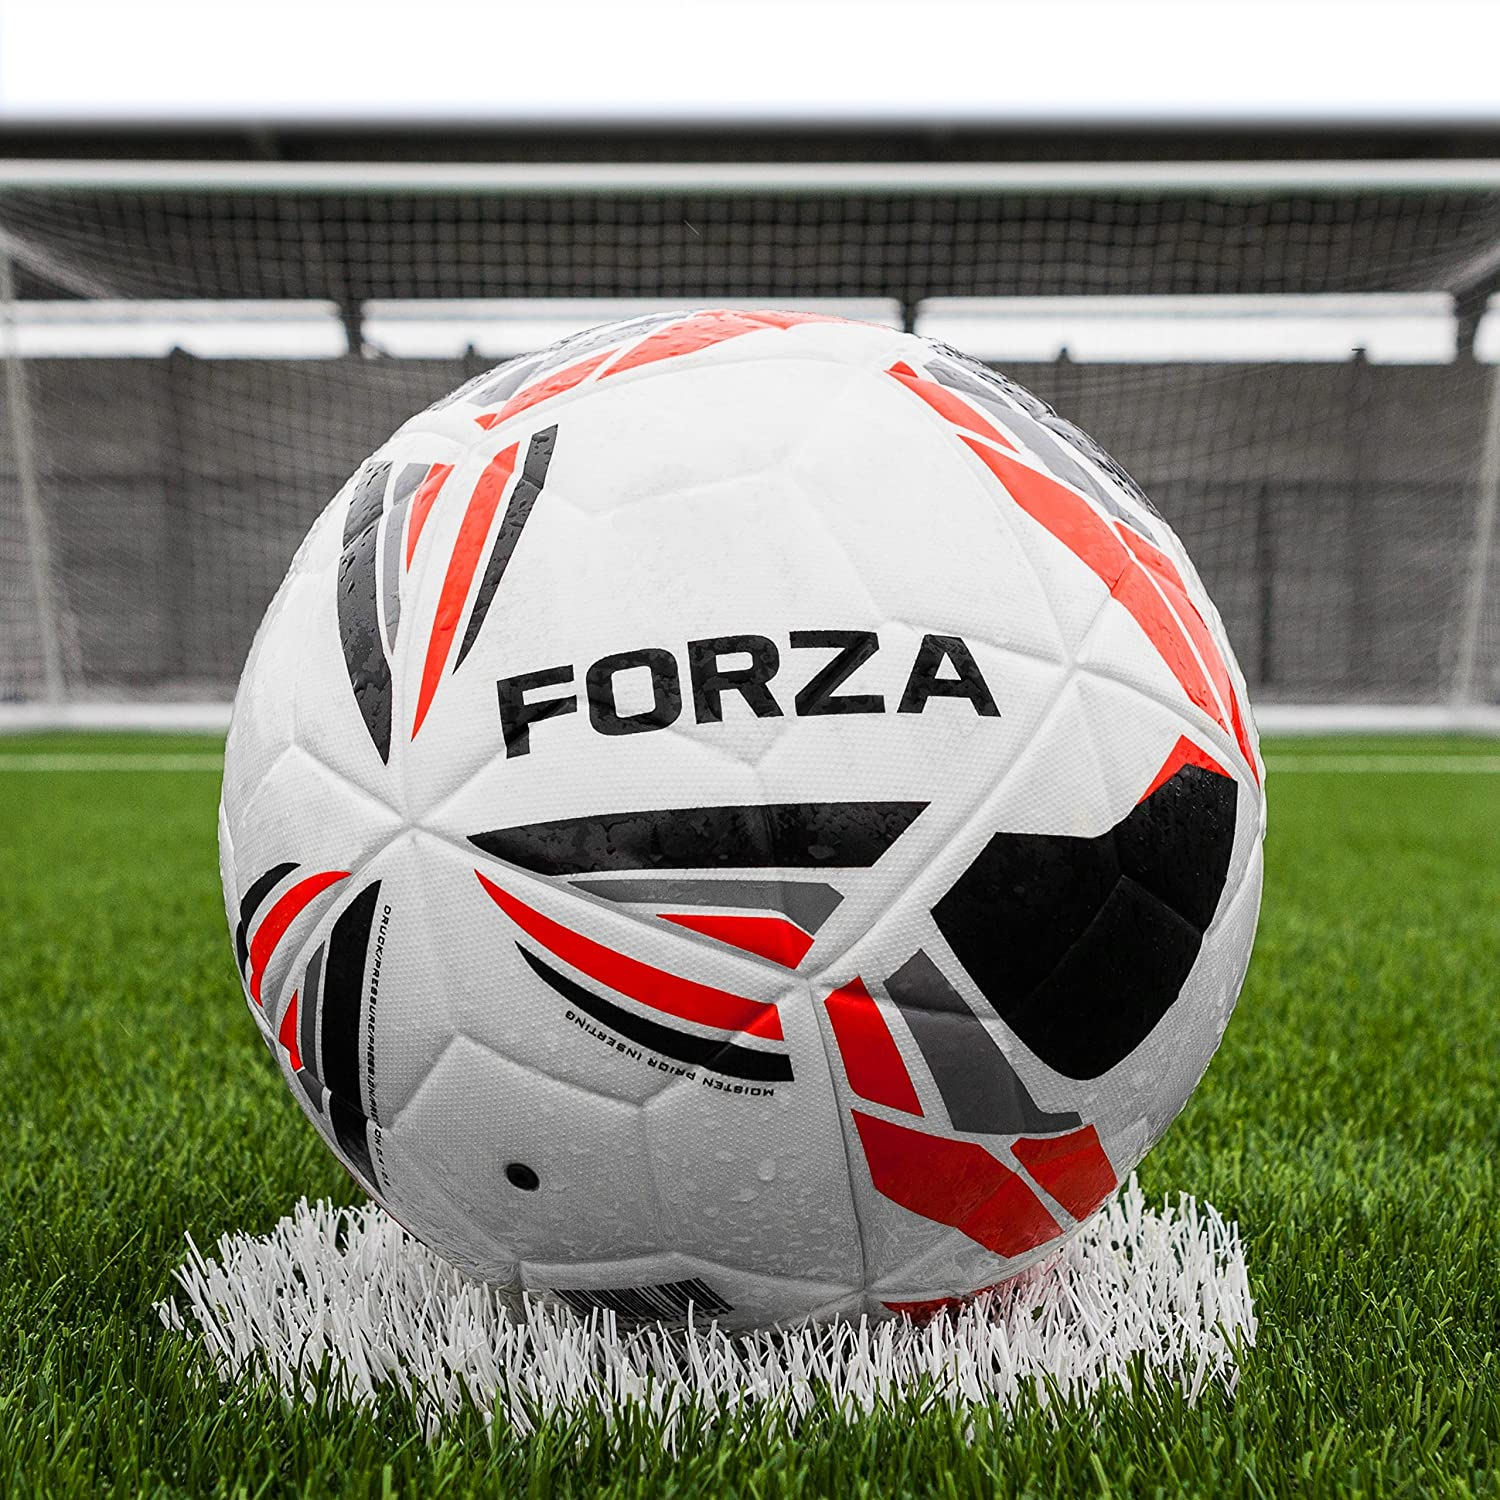 Forza Pro一致Fusionサッカーボール[ 2018 ] [ Net世界スポーツ] B075DGR6QT Size 4|Pack Of 3 Pack Of 3 Size 4